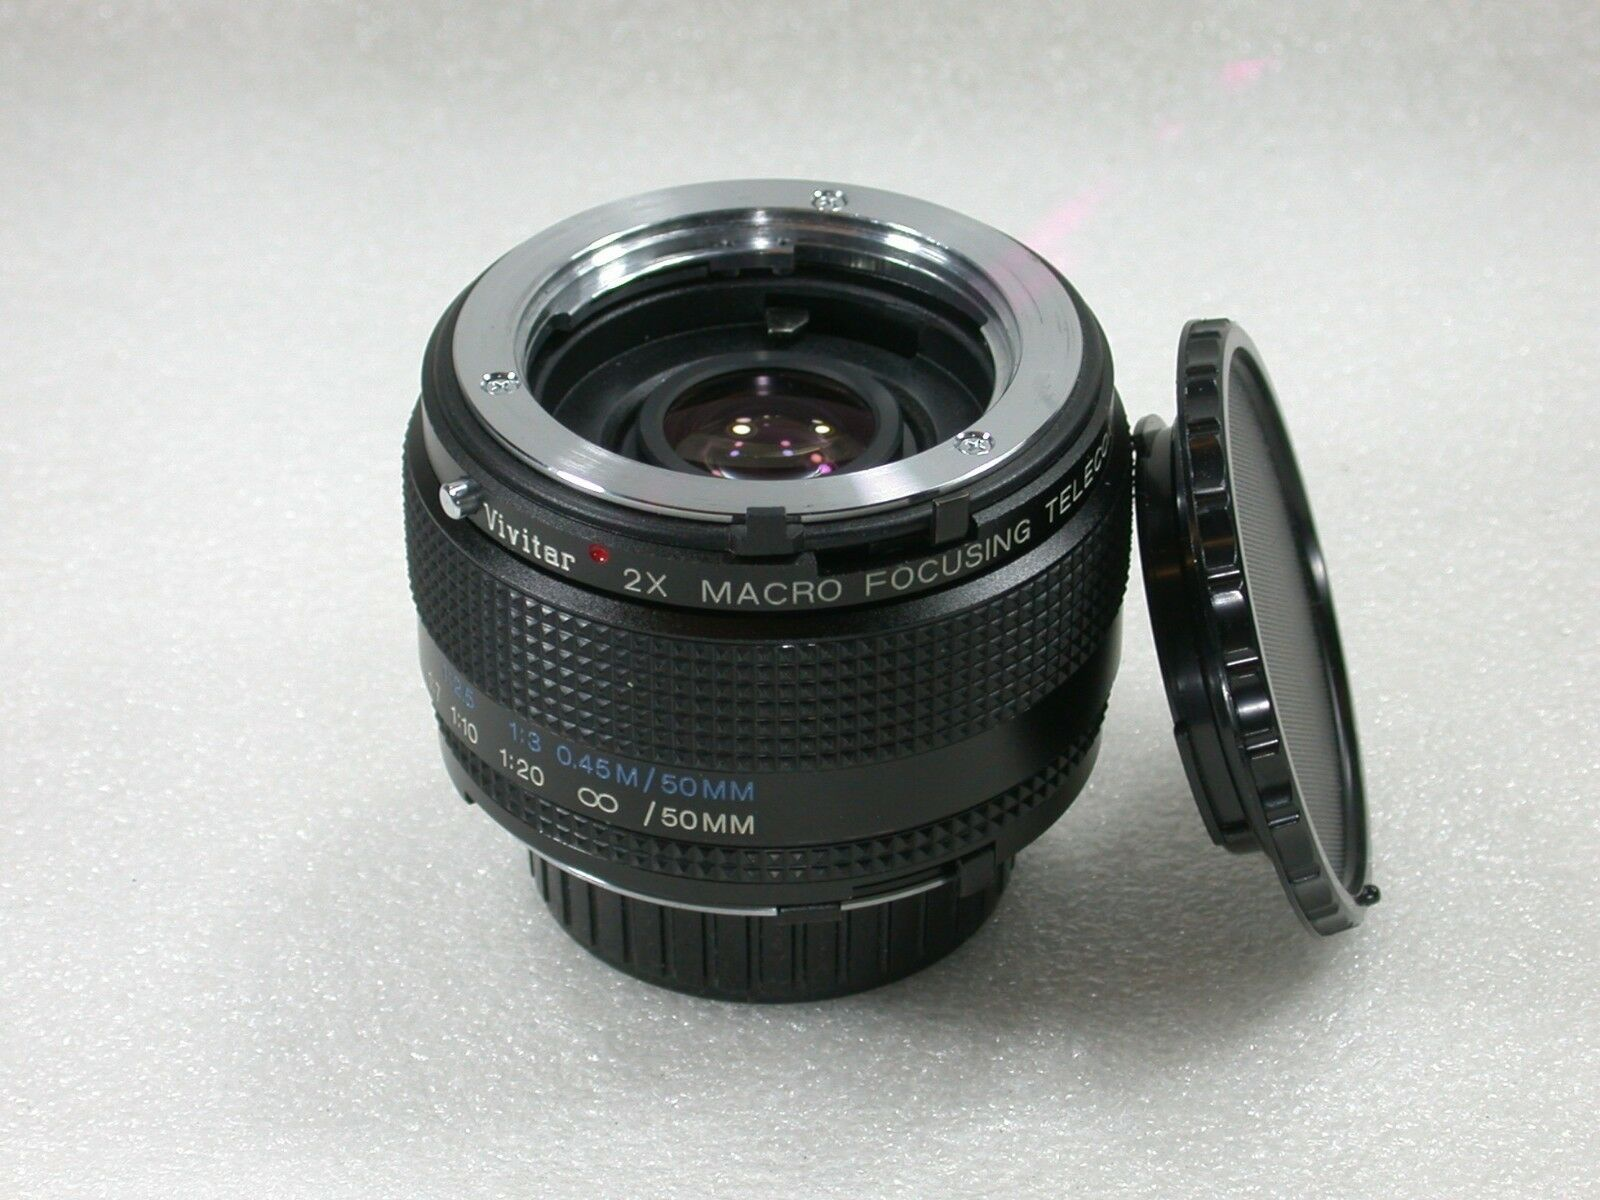 Vivitar MC 2X MACRO Focusing Teleconverter, Minolta MD Fit